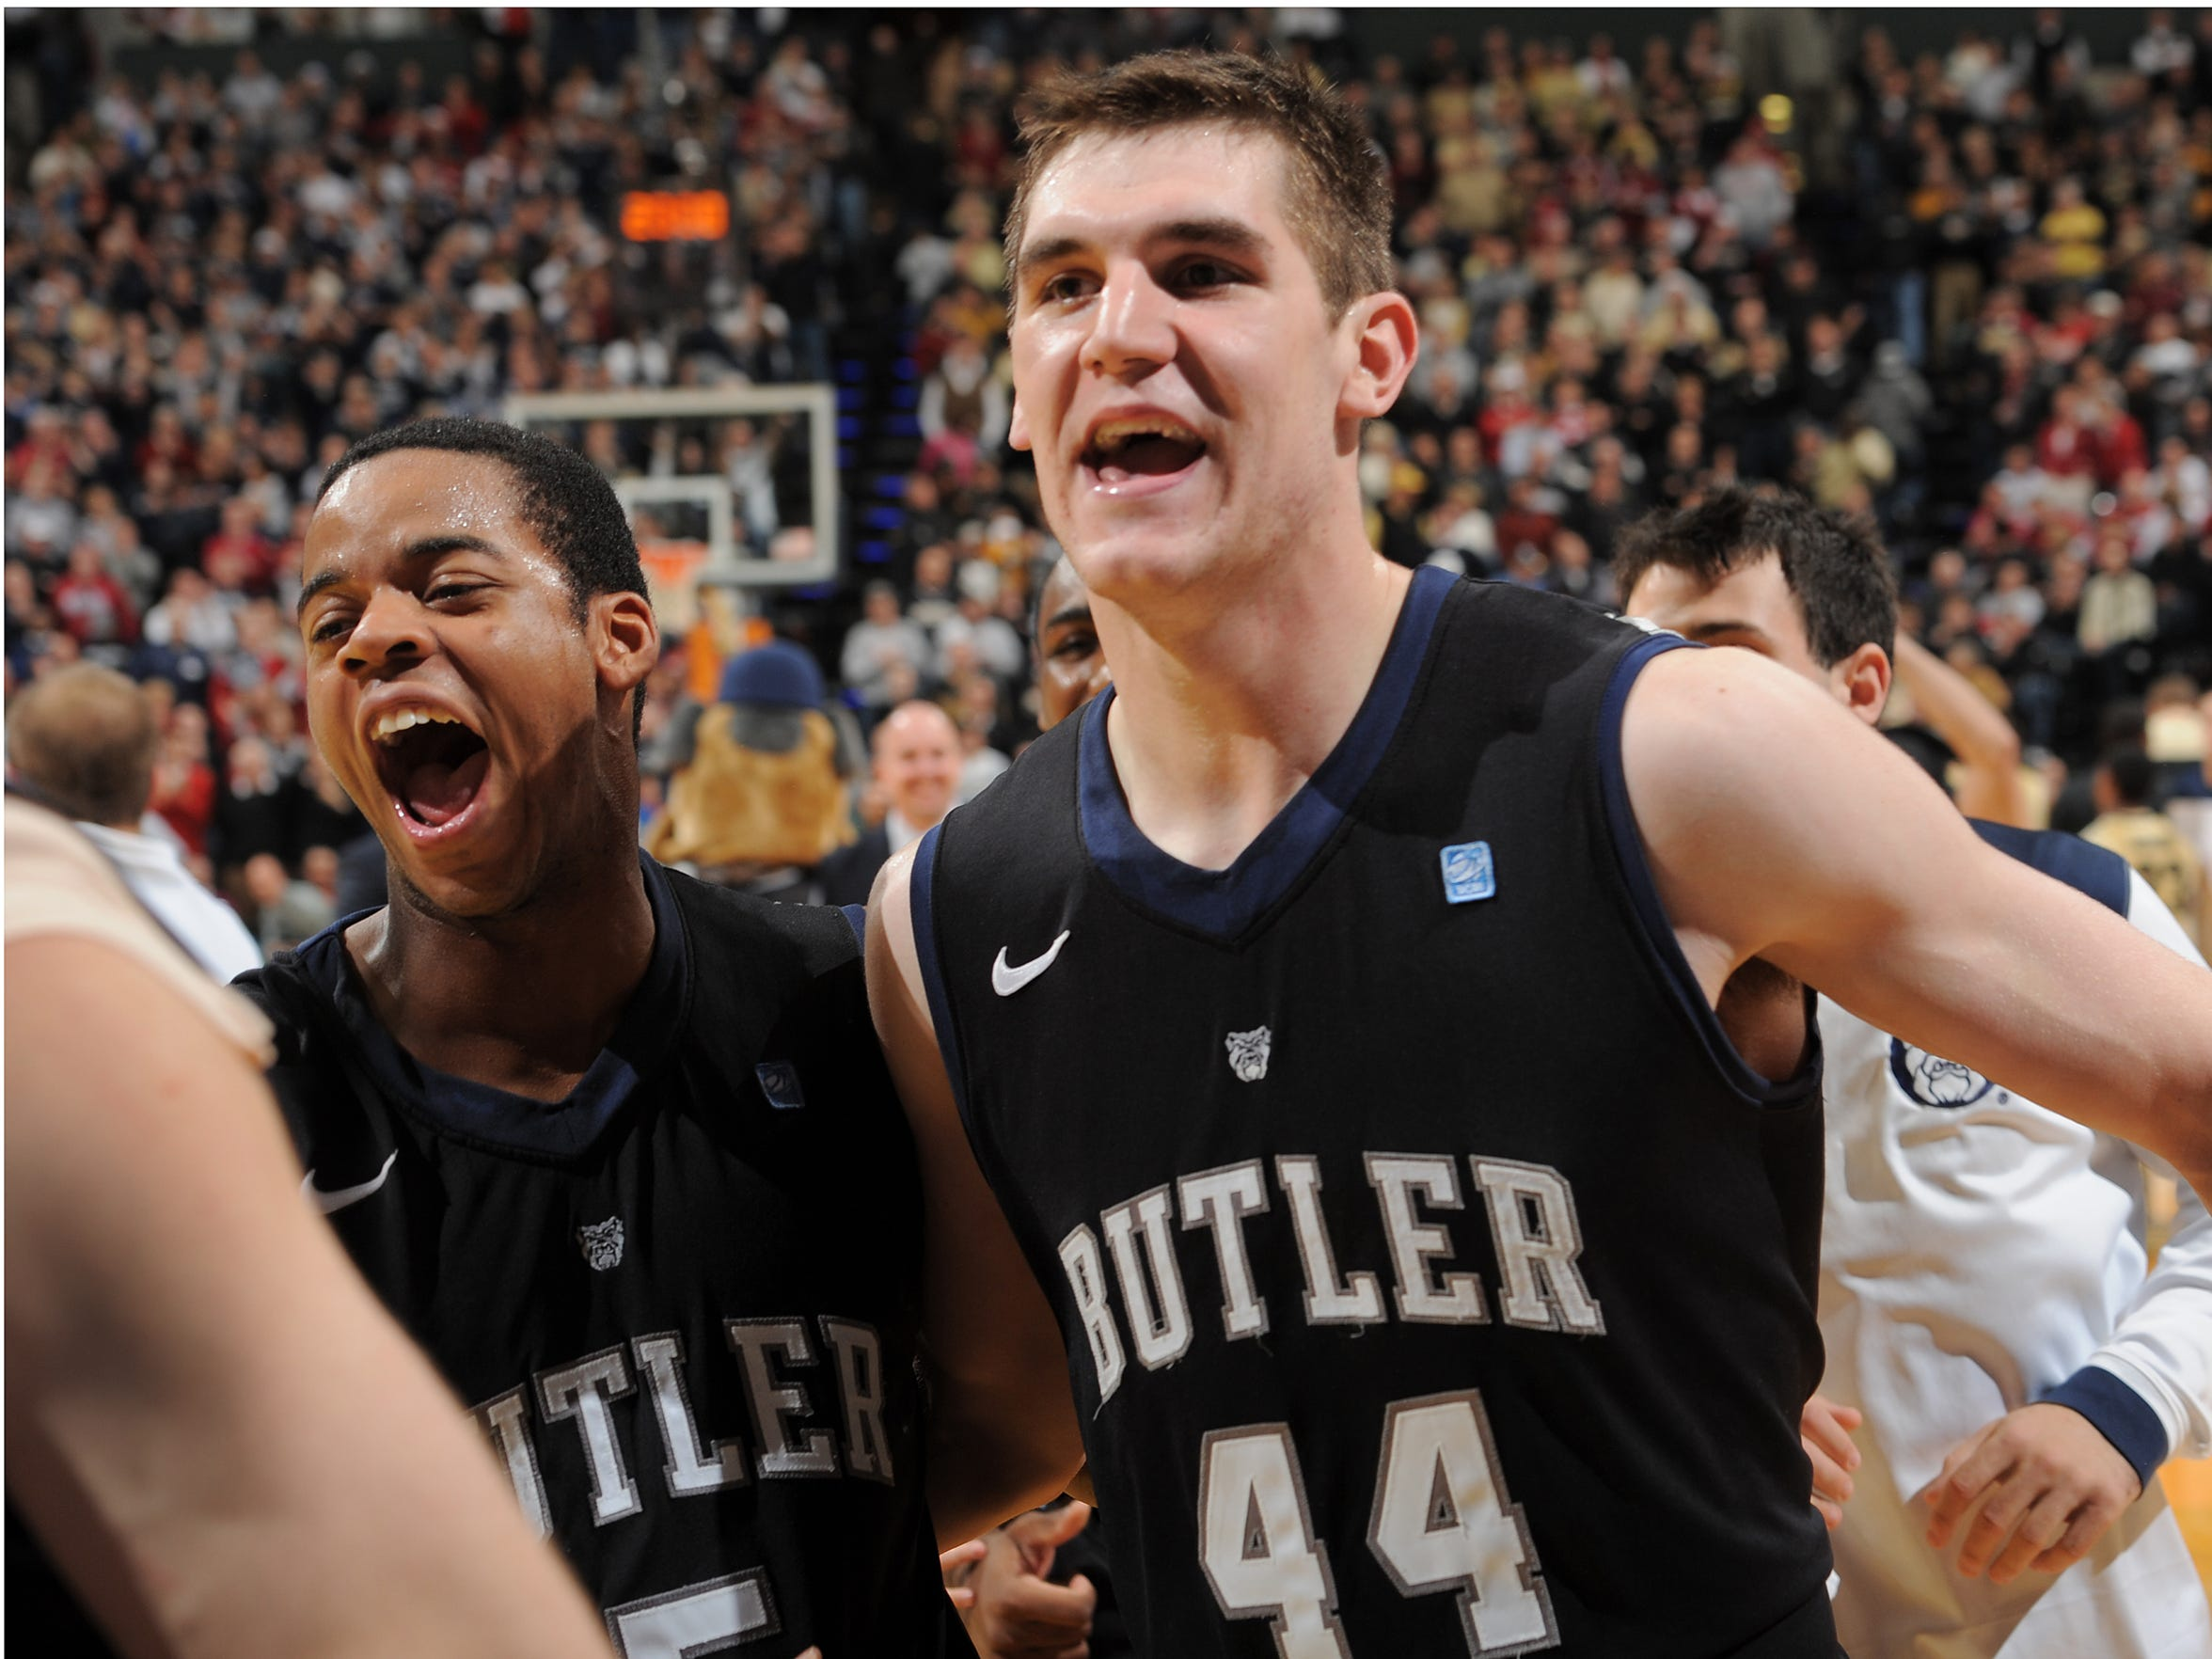 Butler's Andrew Smith celebrates with Ronald Nored, left, after defeating Purdue in the Crossroads Classic in 2011.